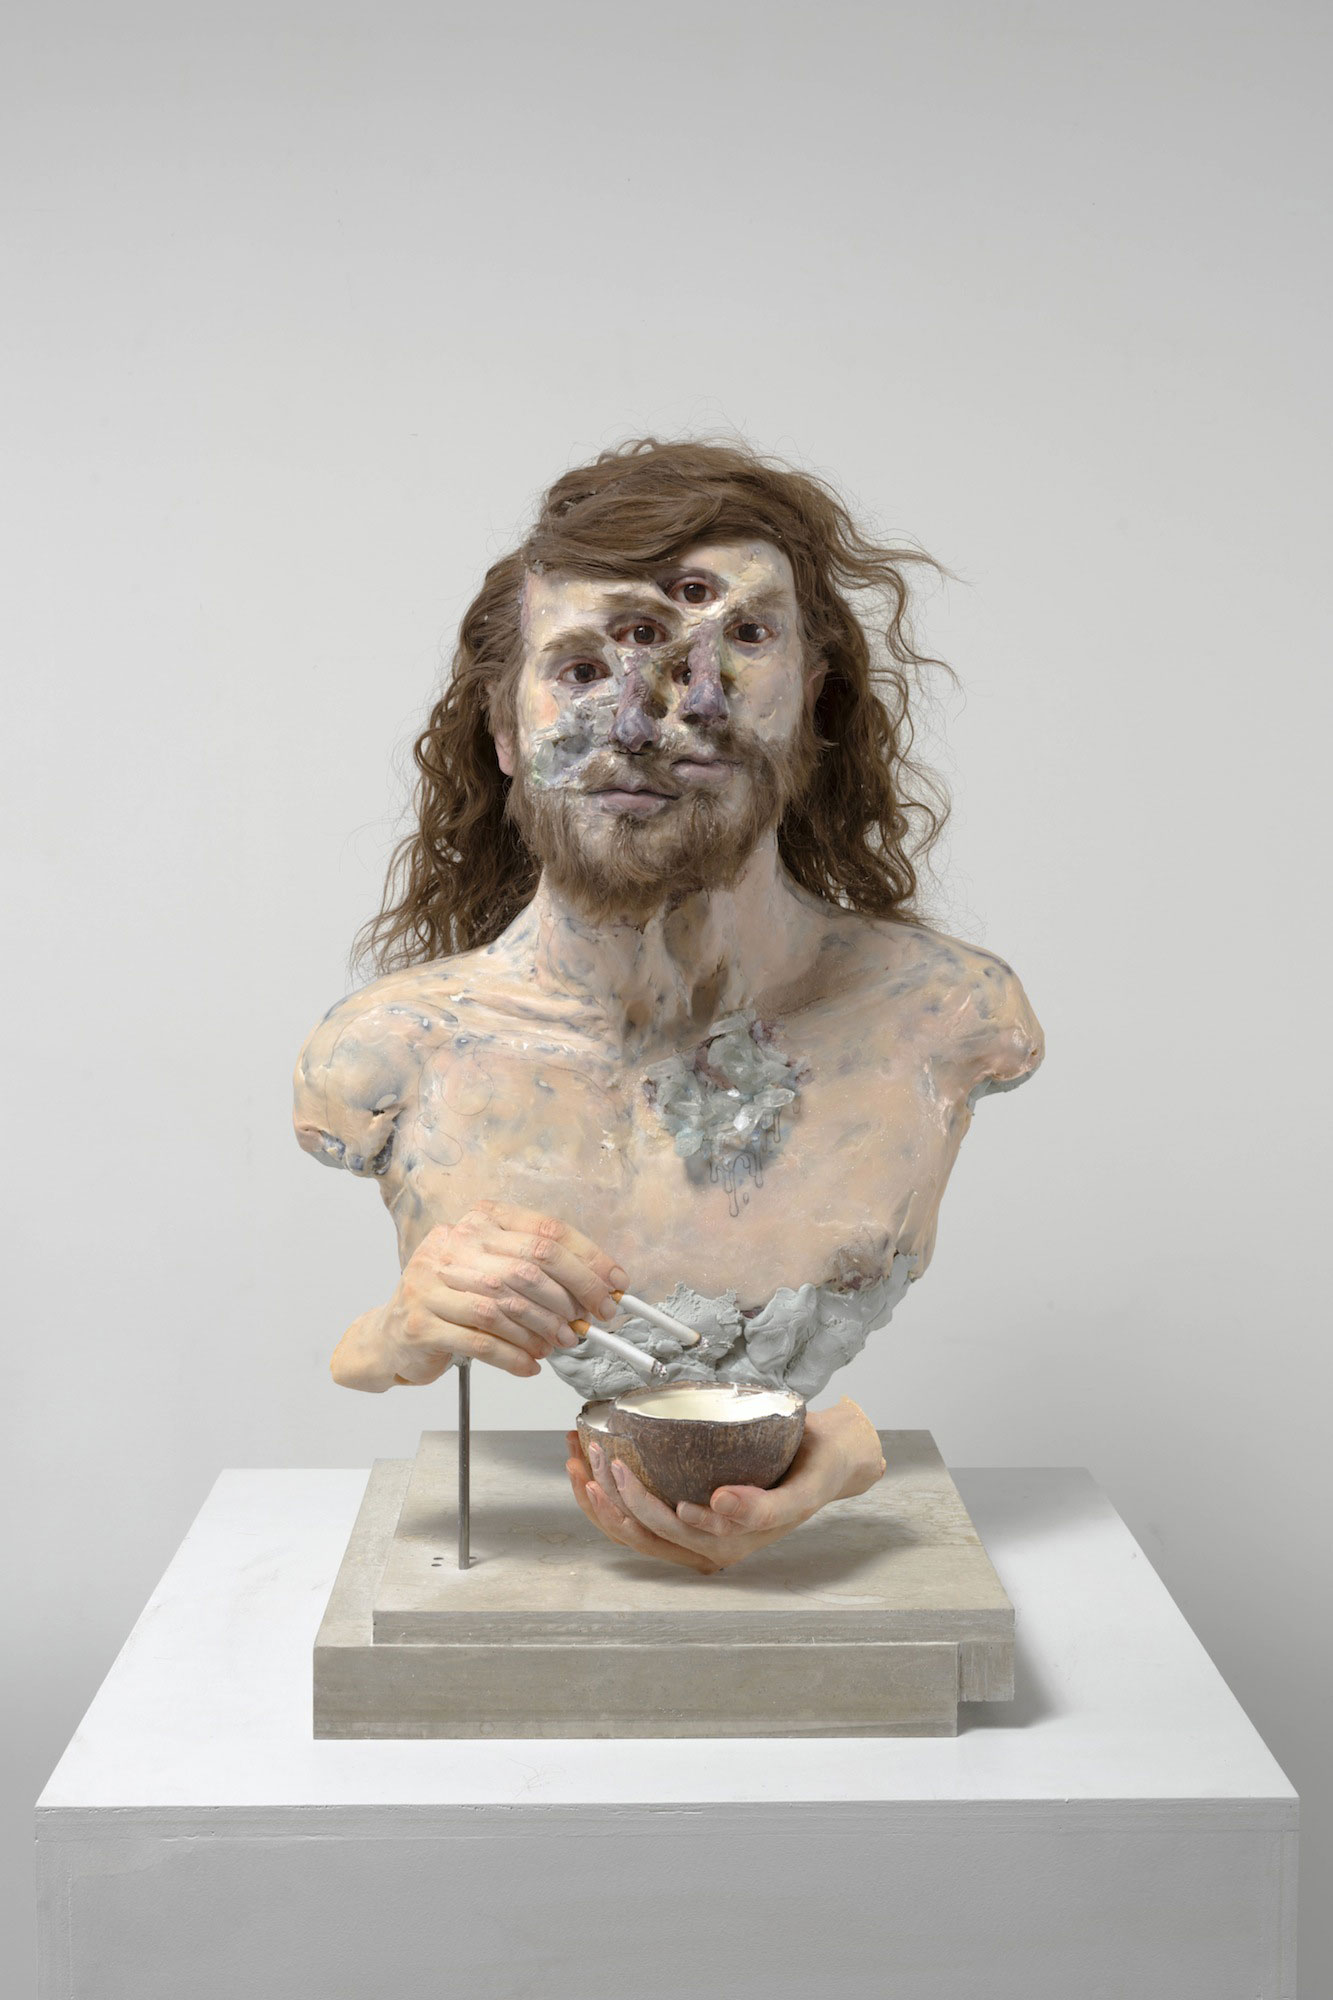 David Altmejd ,  Crystal System , 2019, Expanded polyurethane foam, resin, epoxy clay, epoxy gel, synthetic hair, acrylic paint, quartz, steel, coconut shell, glass eyes, paper, graphite, pearl mica flake and glass gemstone. Image courtesy of David Altmejd